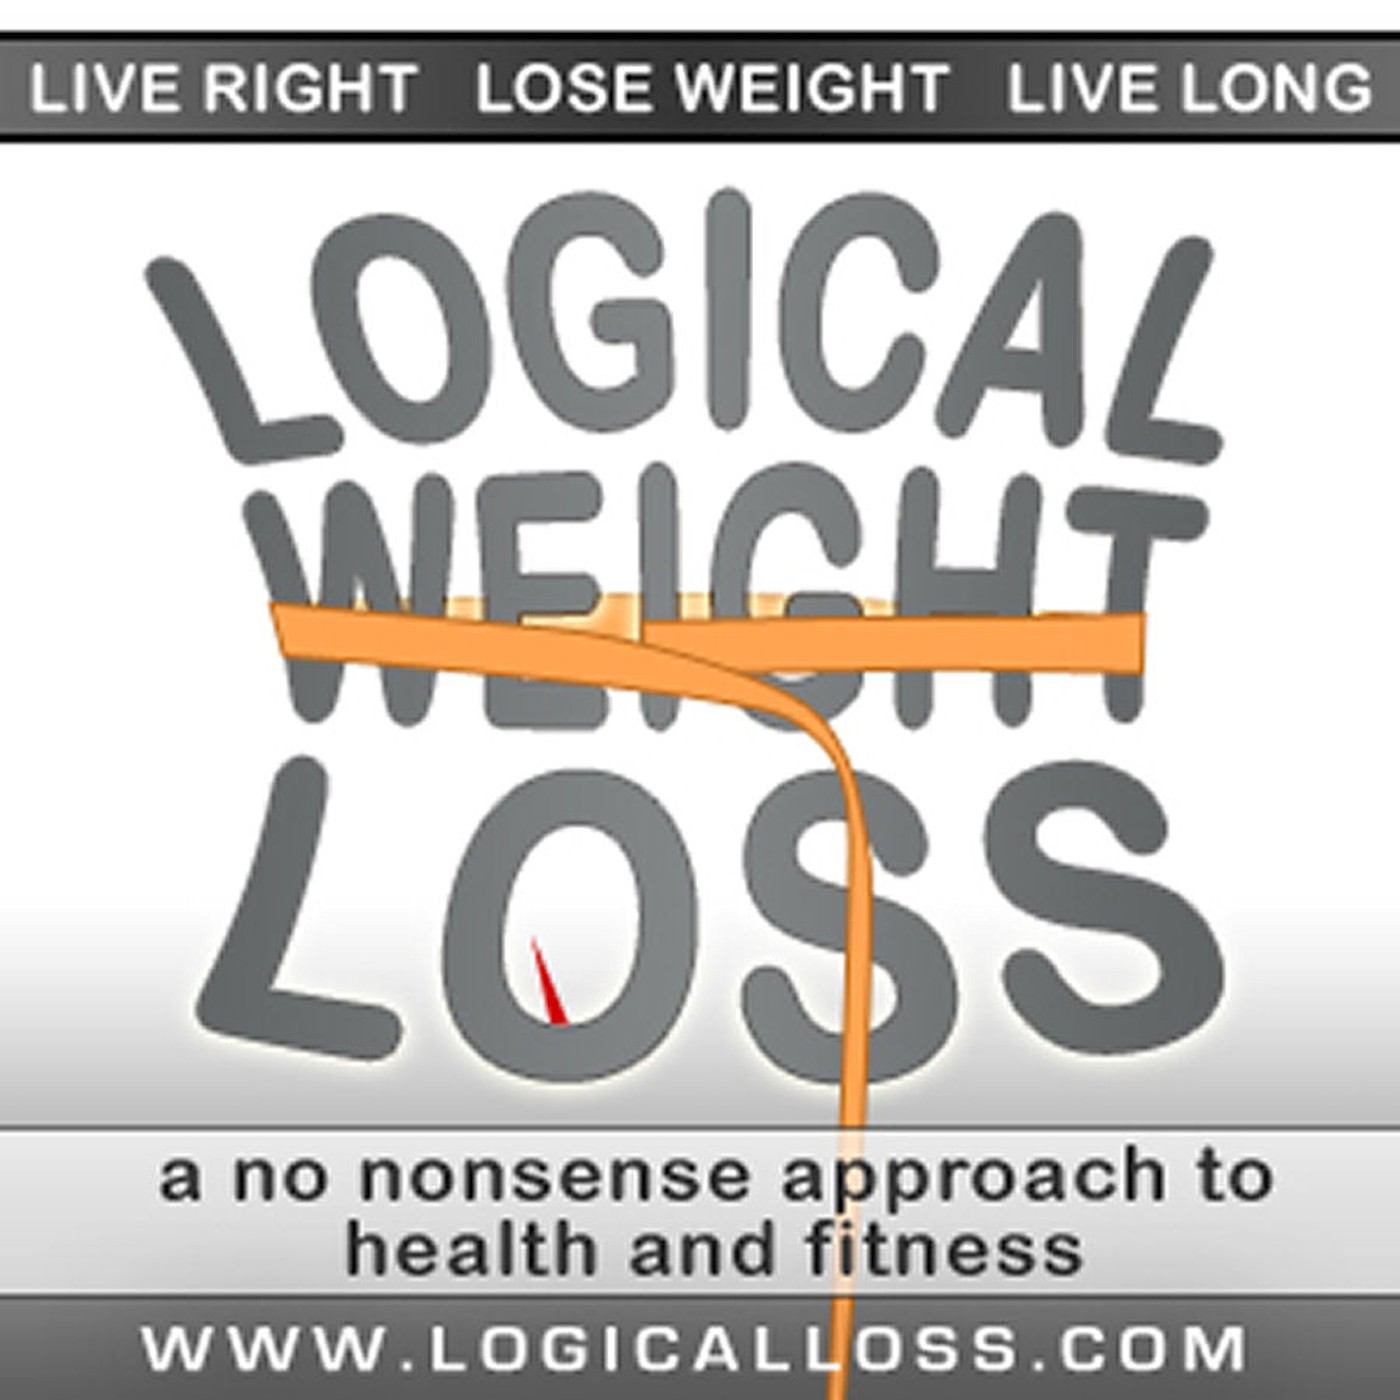 Beeminder Weight Loss App and Lifestyle Change Tips